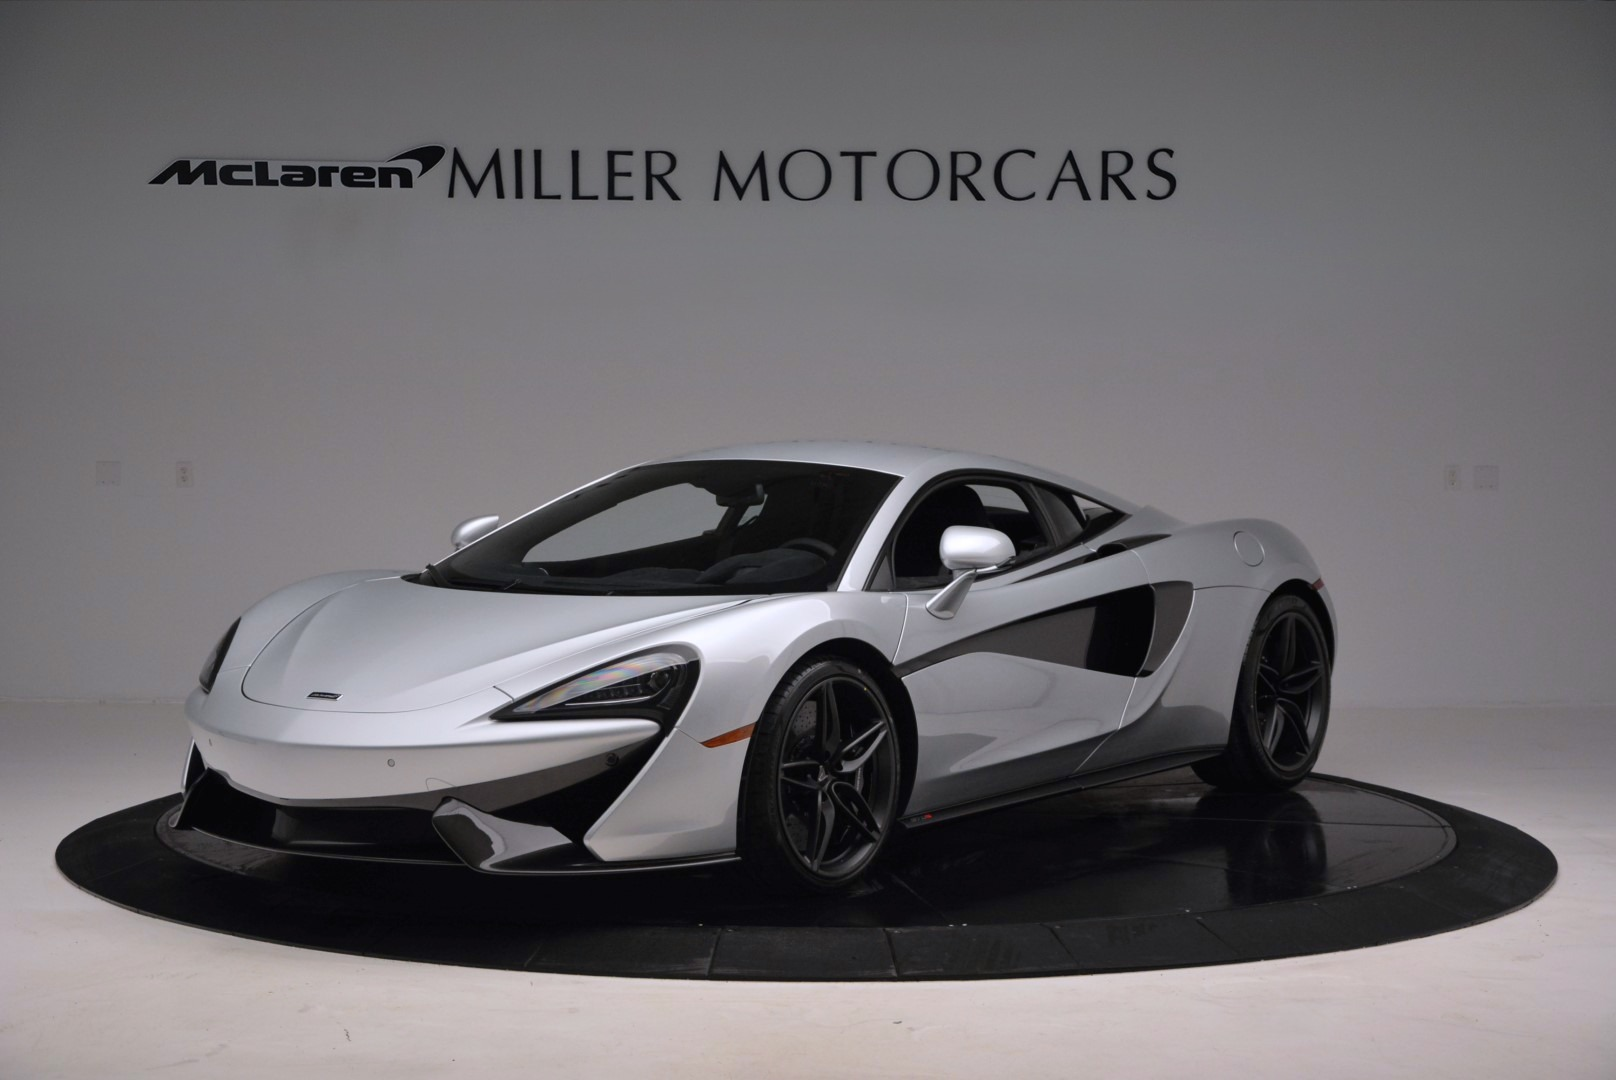 Used 2017 McLaren 570S Coupe for sale $149,900 at McLaren Greenwich in Greenwich CT 06830 1